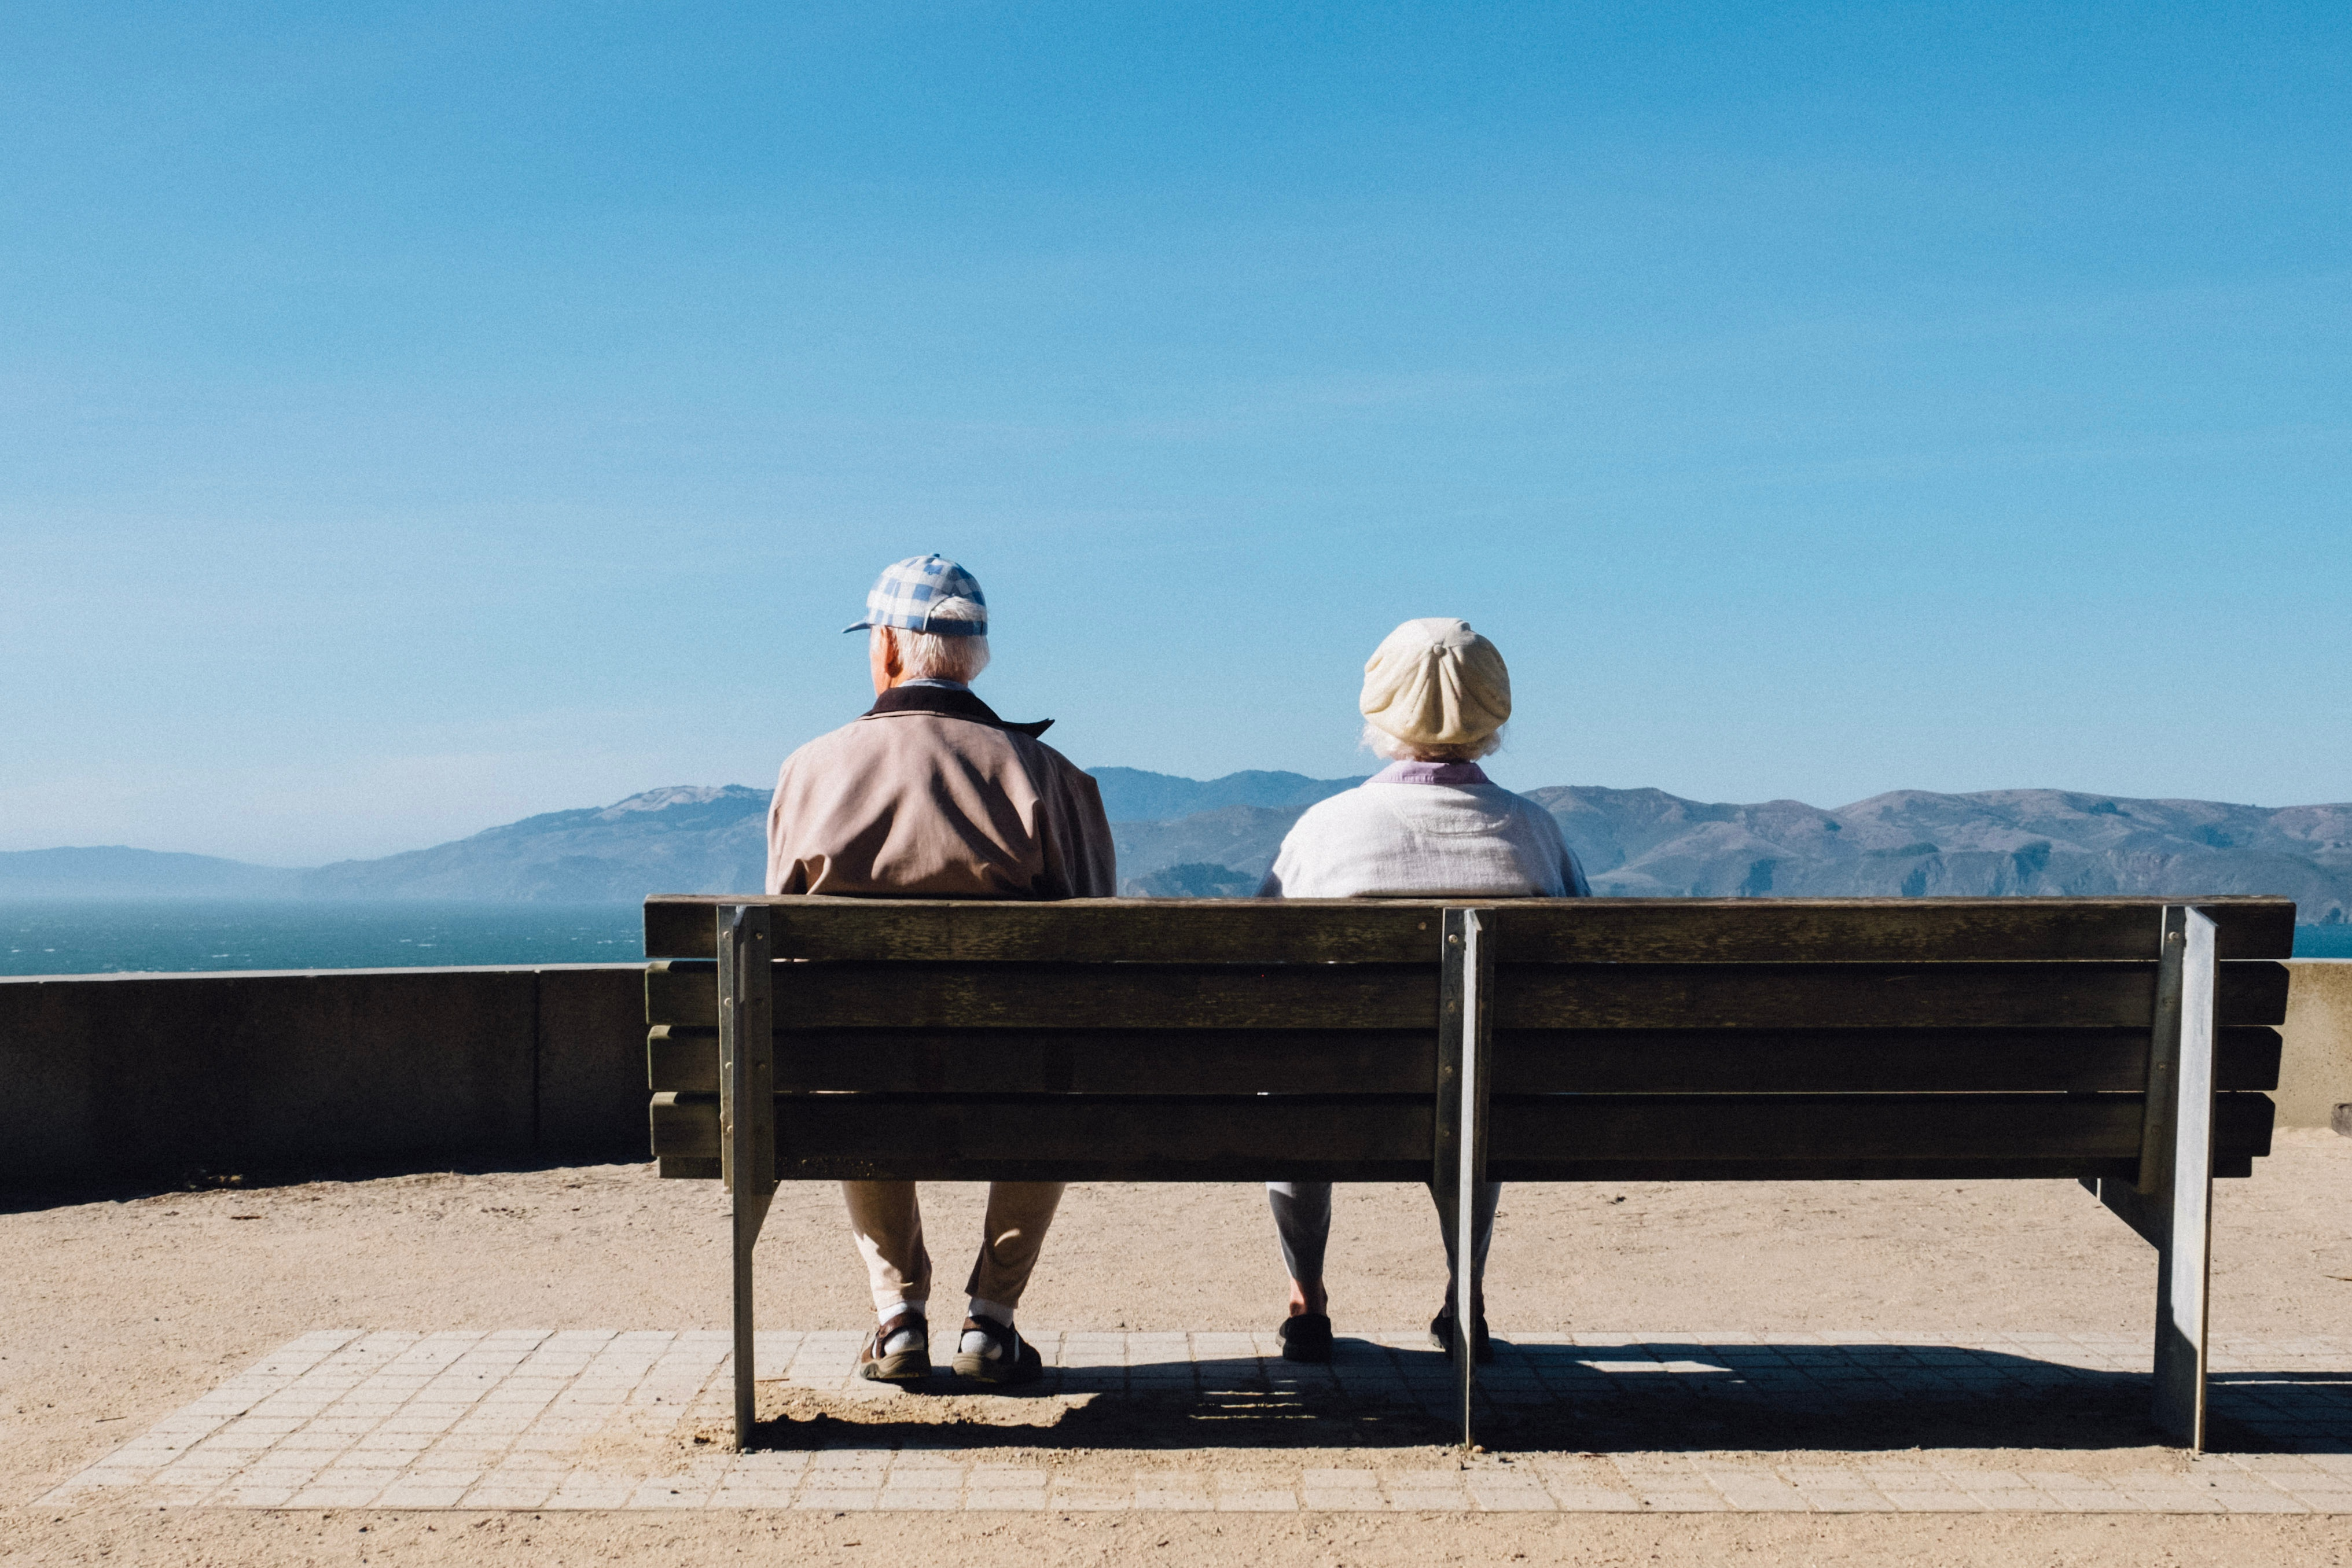 Retiring with mortgage debt